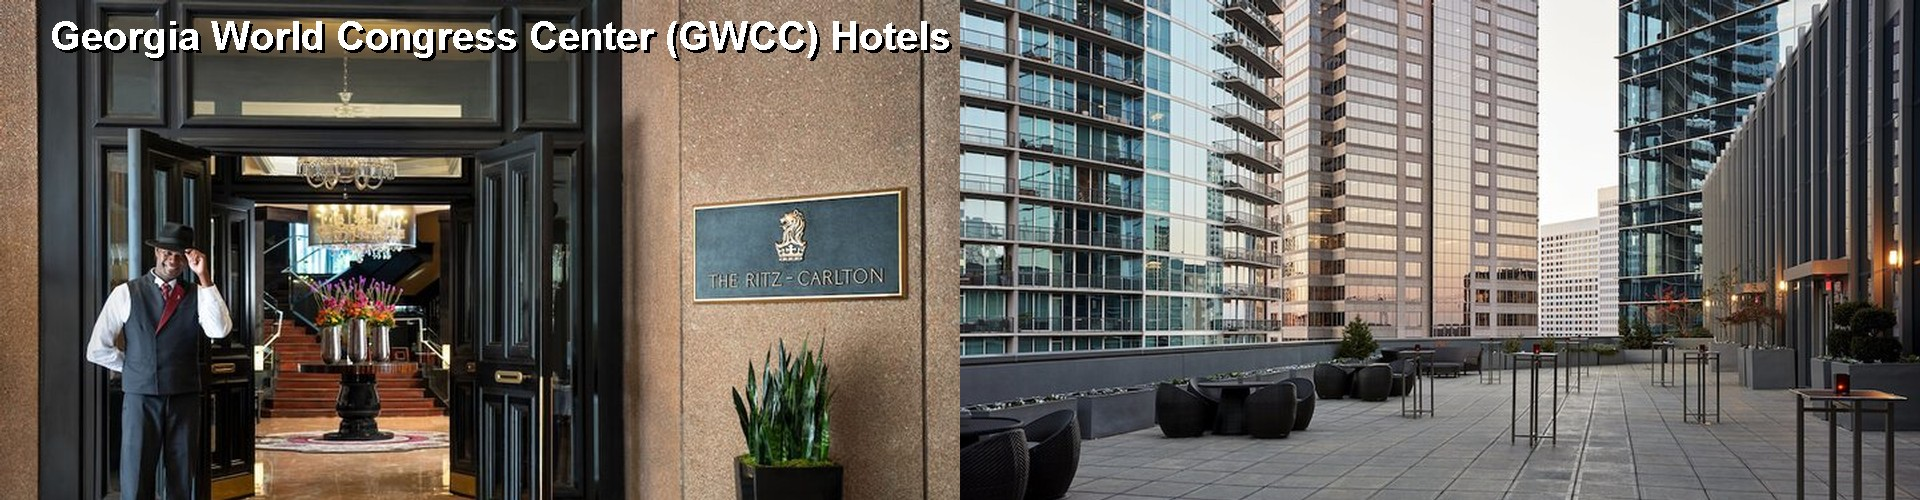 5 Best Hotels near Georgia World Congress Center (GWCC)